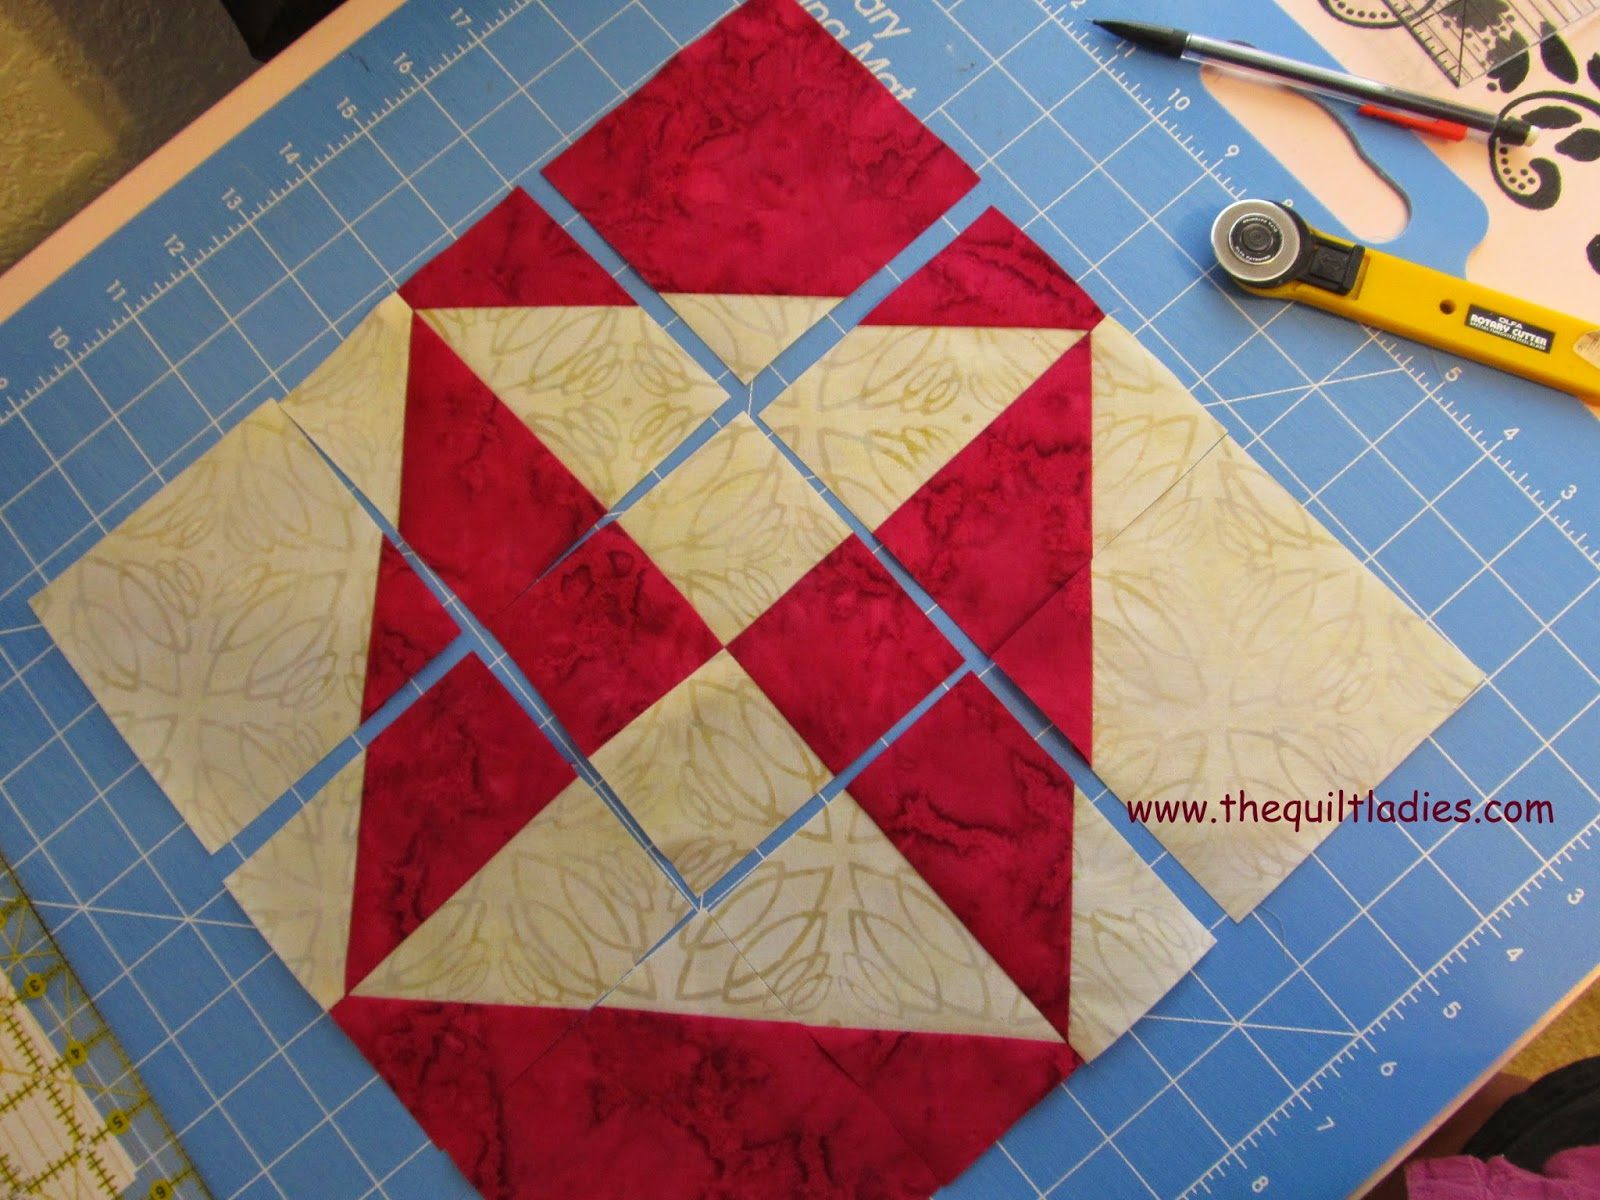 star quilt pattern from Block quilt magazine pattern